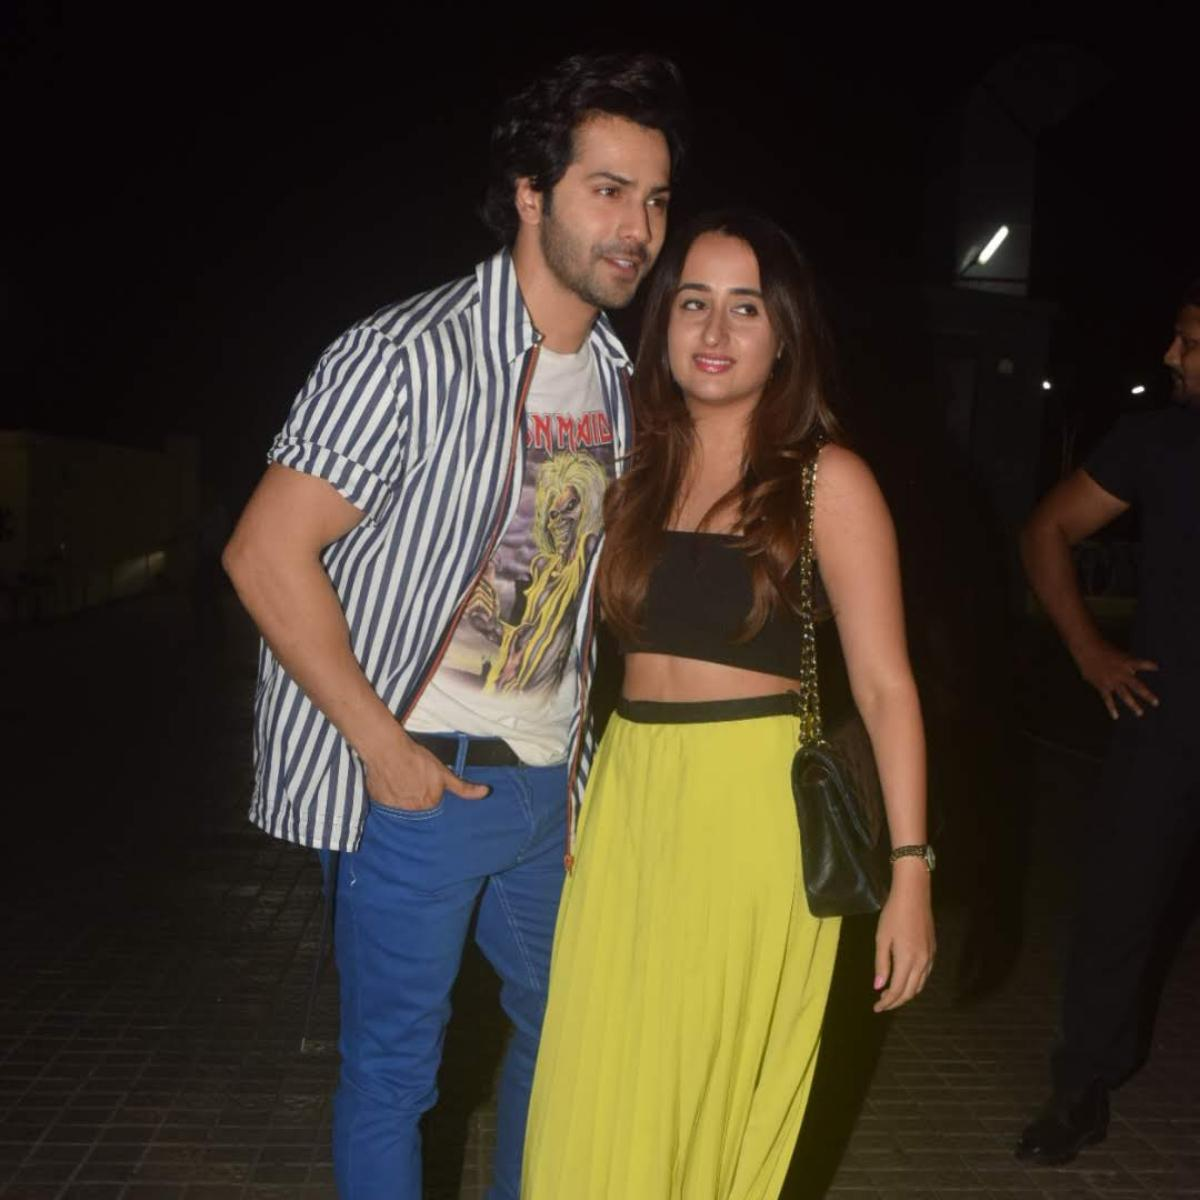 Papped pictures of Varun and Natasha